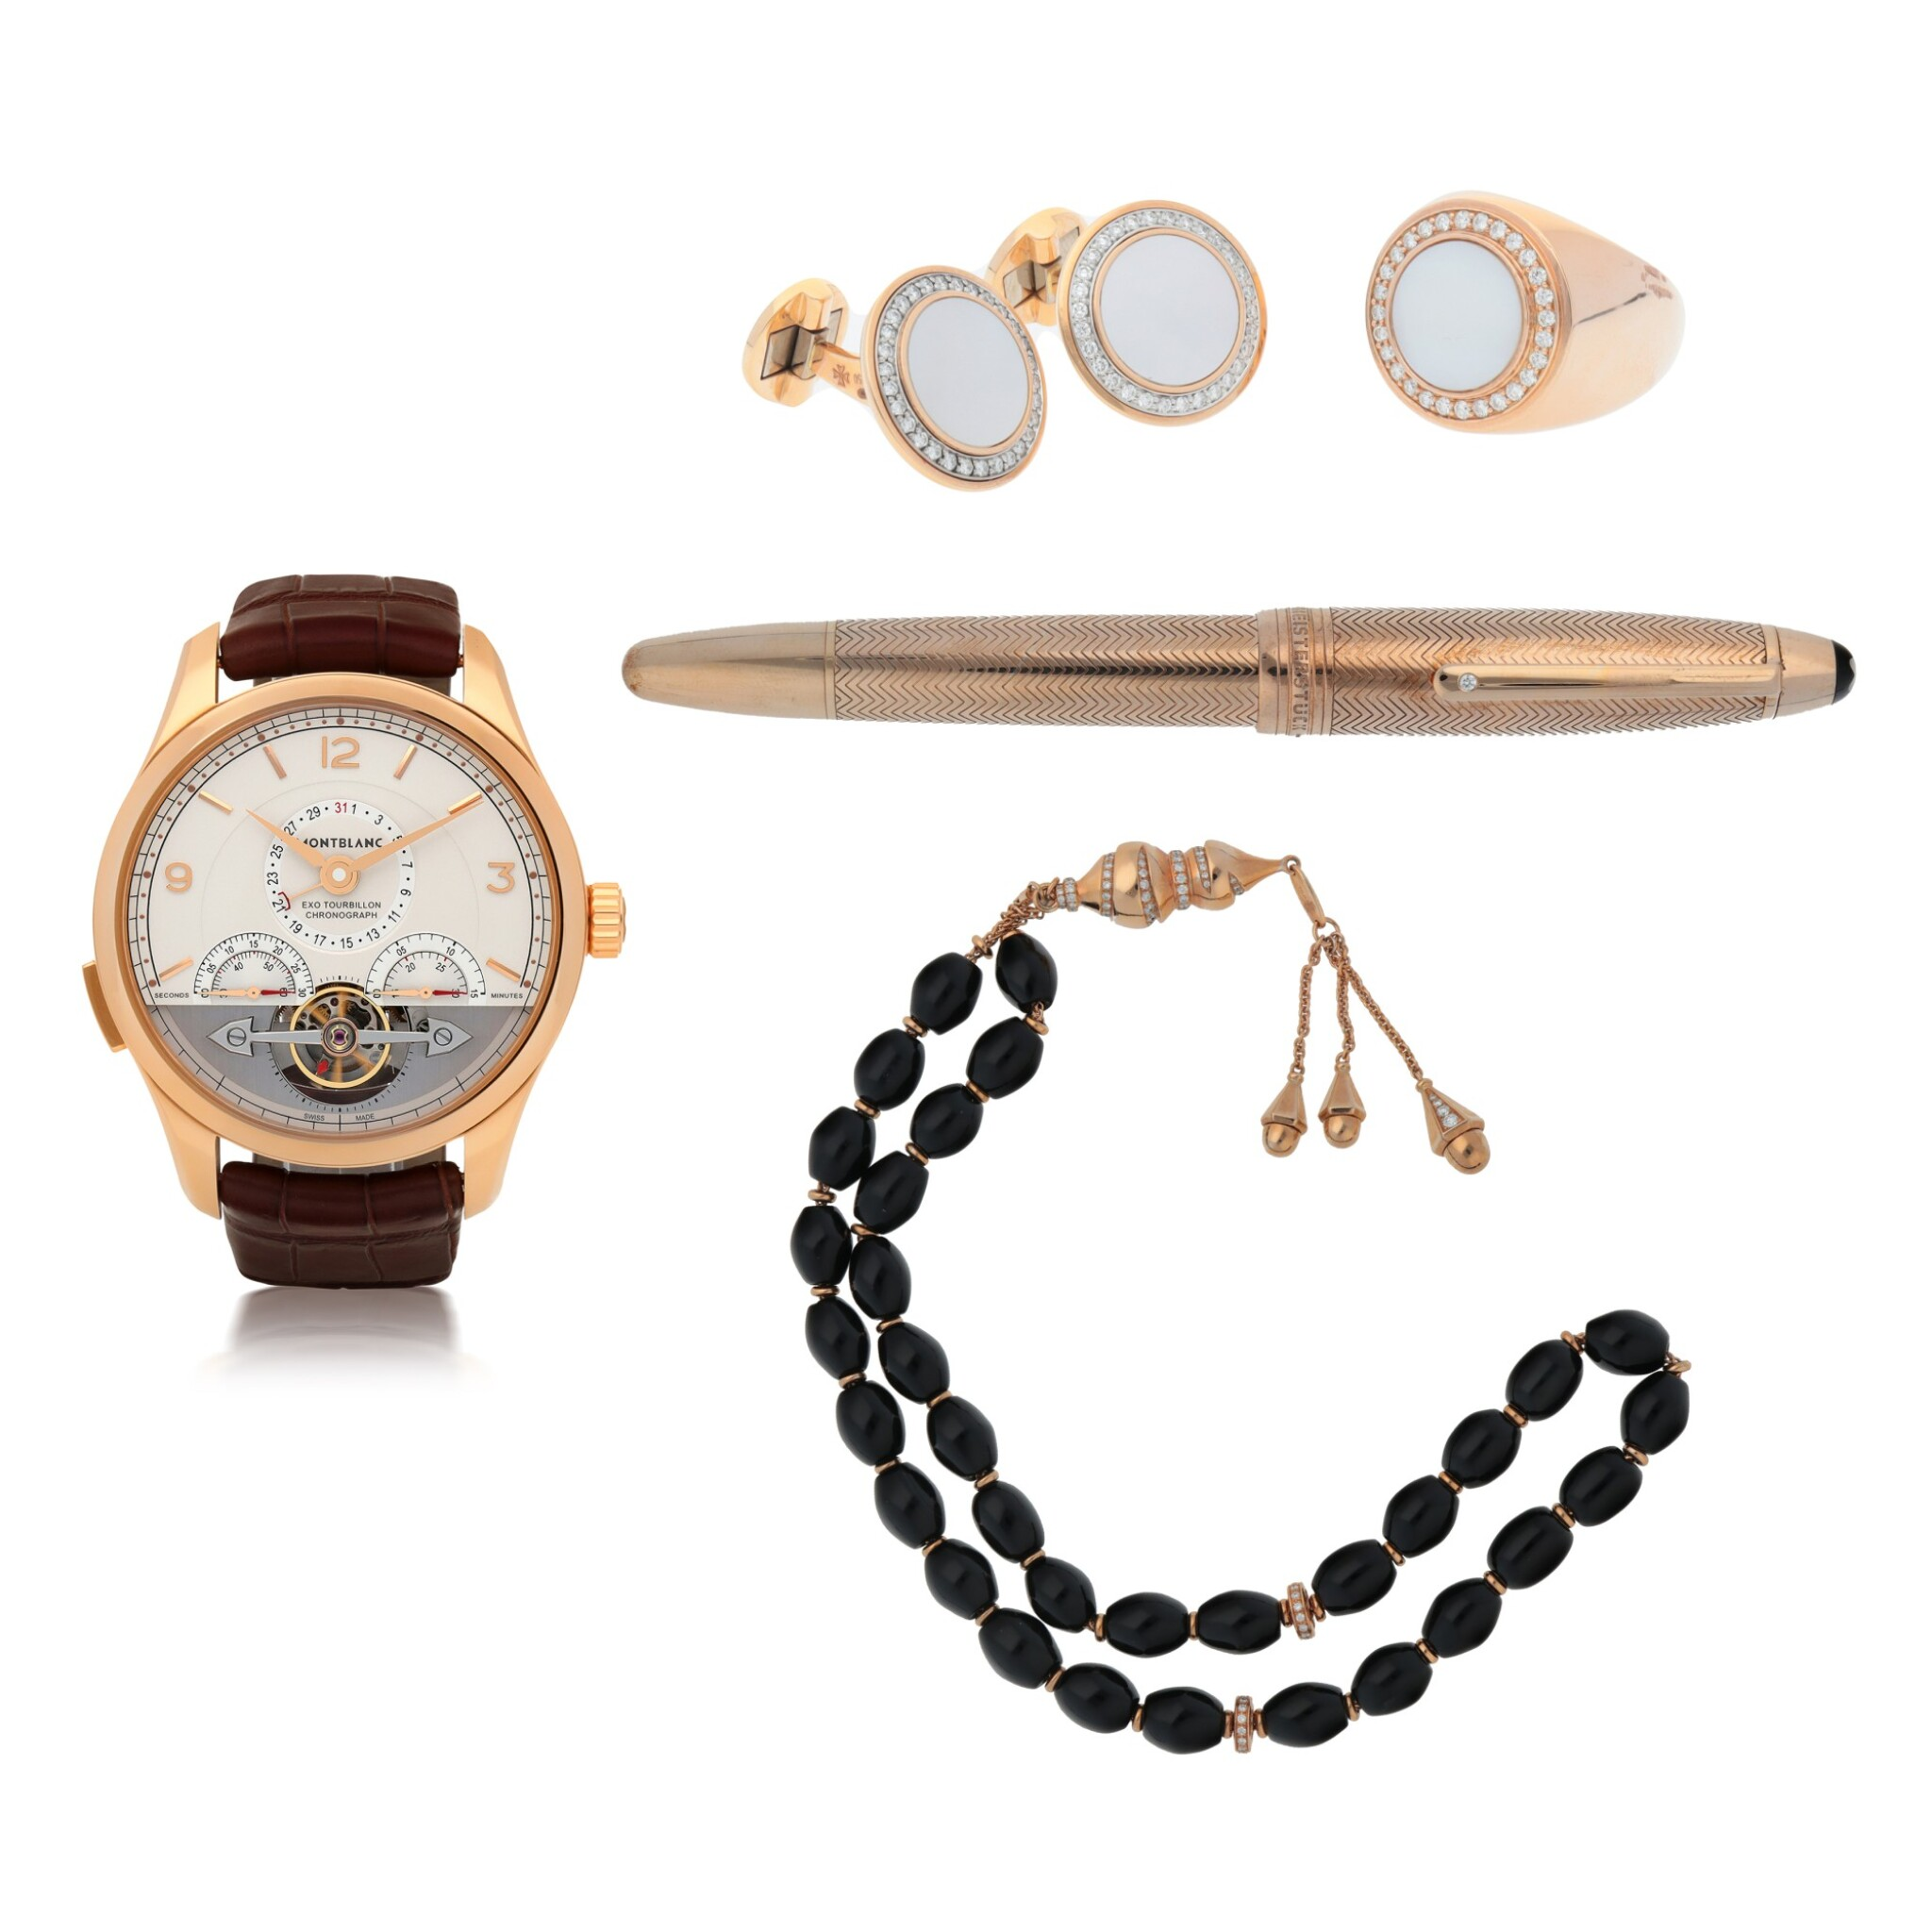 View full screen - View 1 of Lot 422. EXOTOURBILLON MINUTE CHRONOGRAPH, REF 7353 PINK GOLD TOURBILLON CHRONOGRAPH WRISTWATCH WITH DATE, MOTHER-OF-PEARL AND DIAMOND-SET PINK GOLD VACHERON CONSTANTIN CUFFLINKS AND MATCHING ACCOUTREMENTS CIRCA 2015.